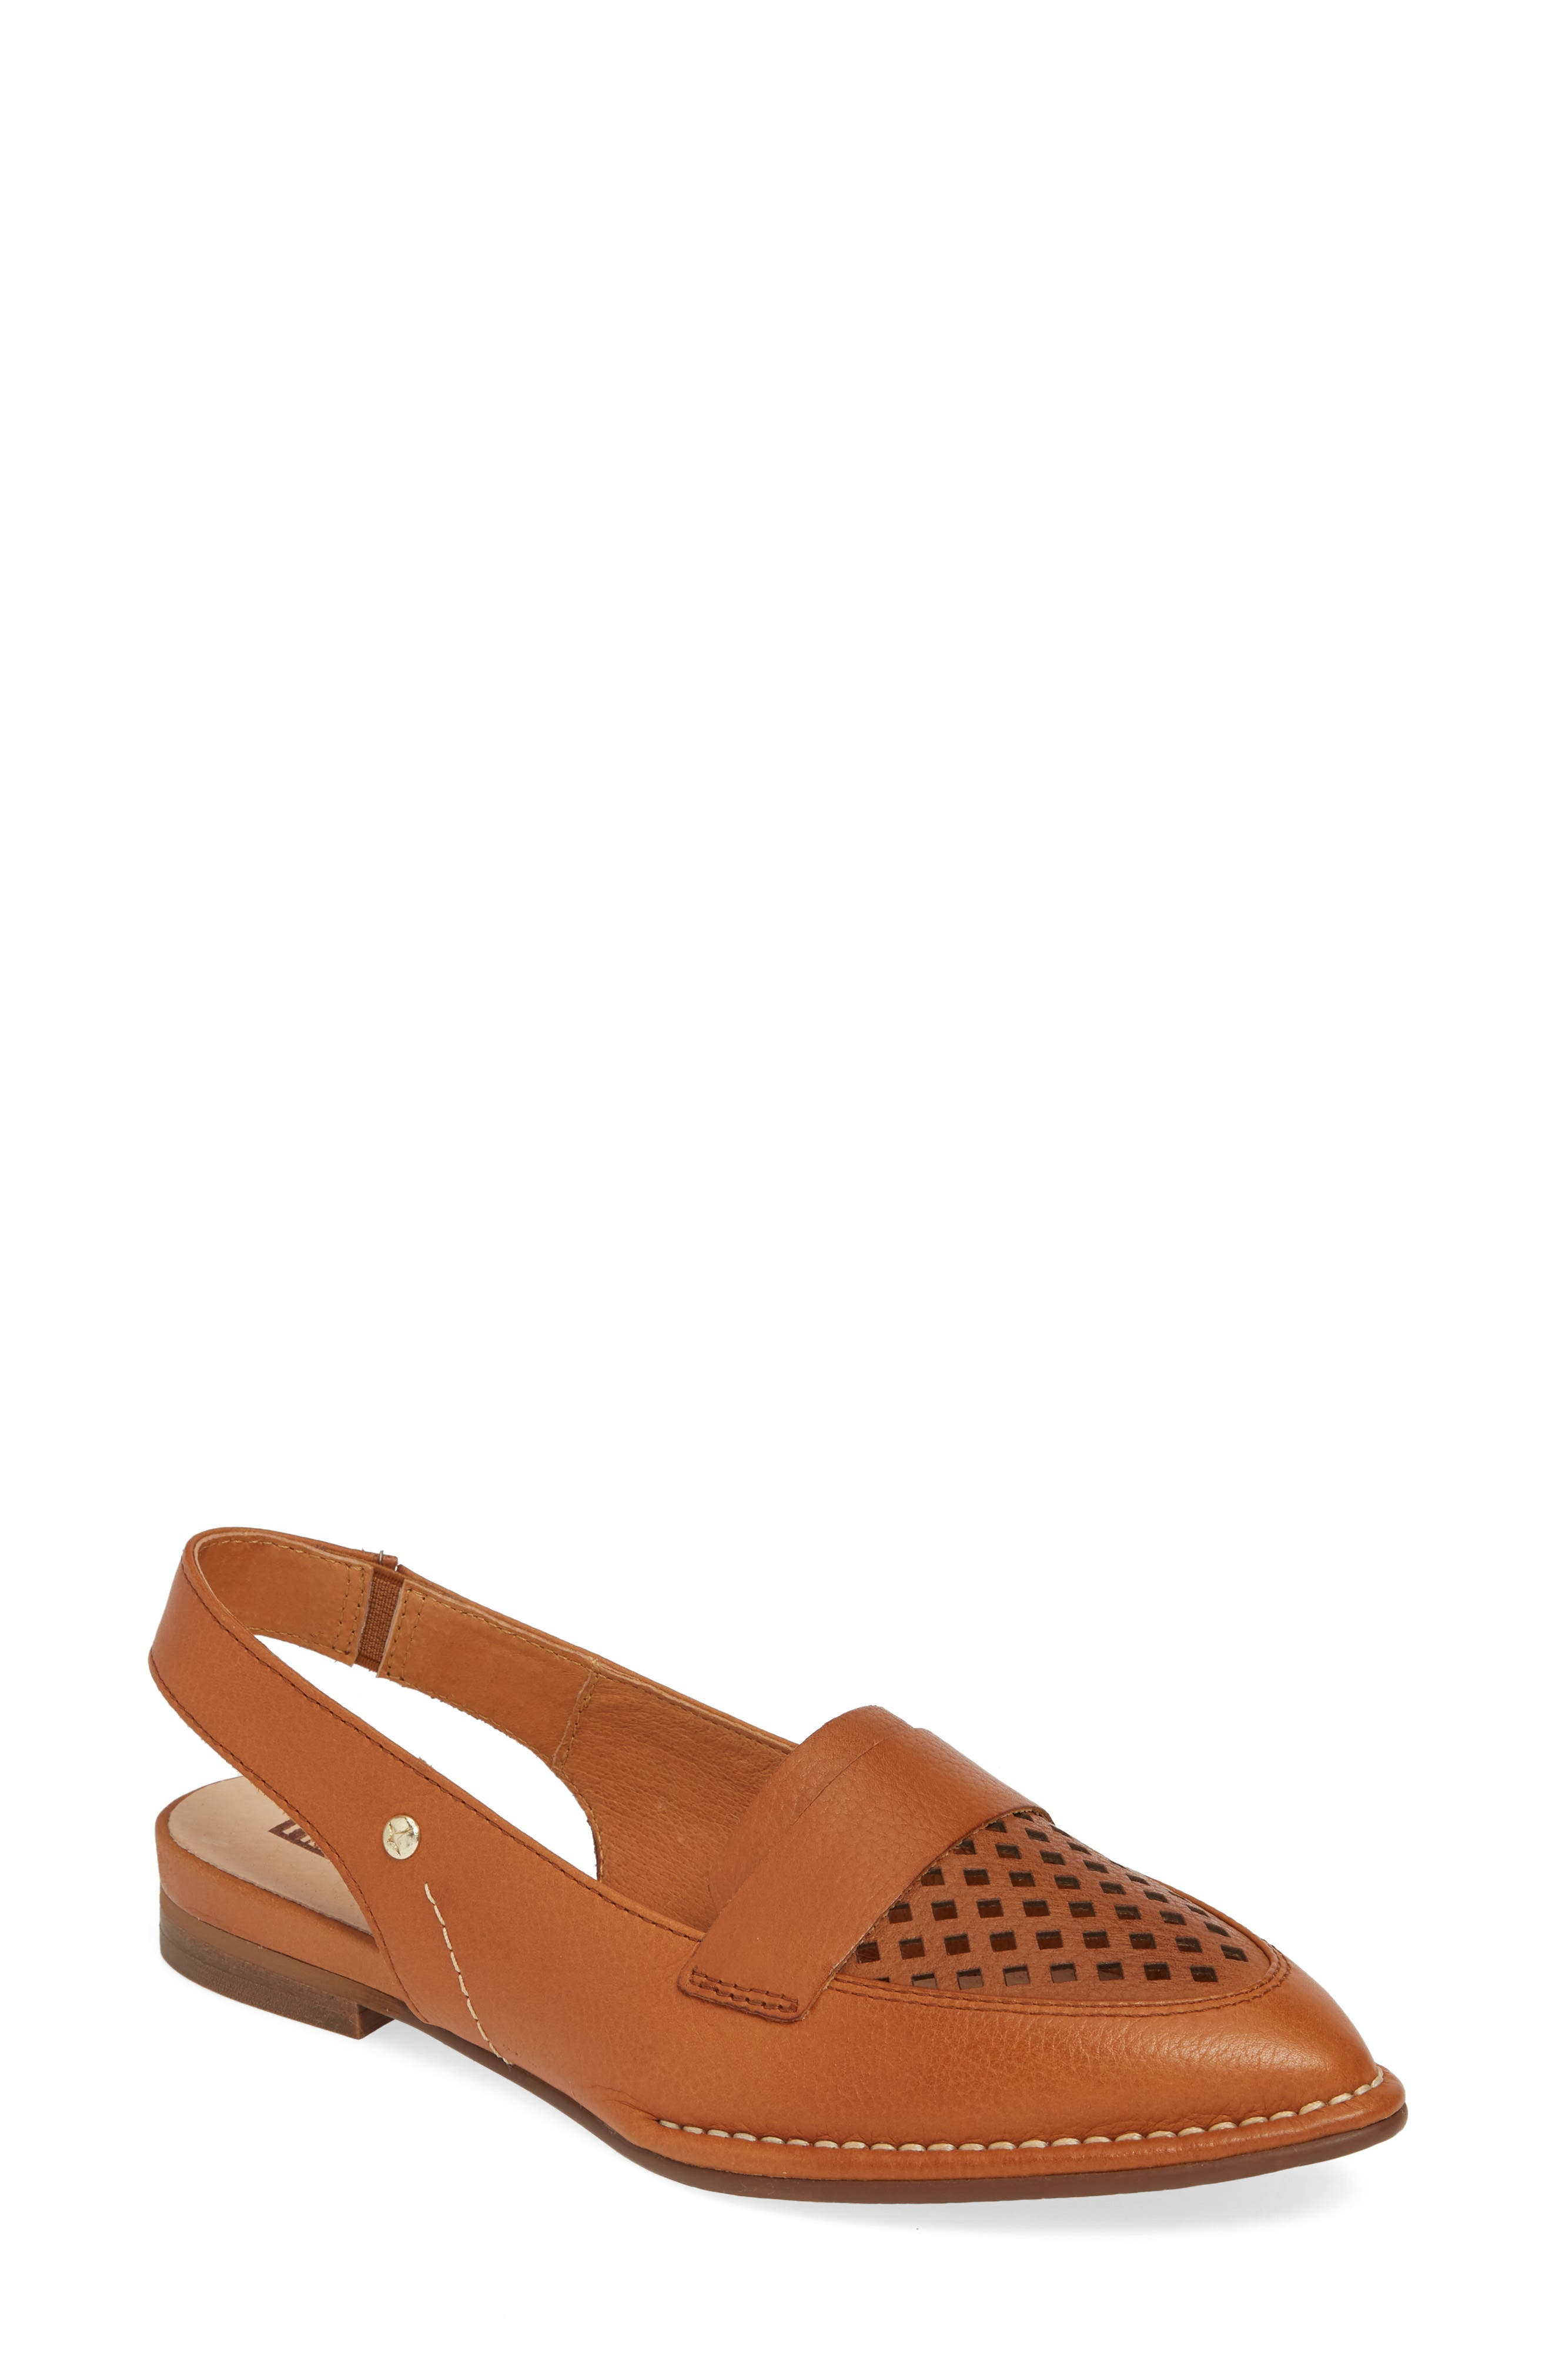 Pikolinos Caleta Perforated Slingback Flat, Brown